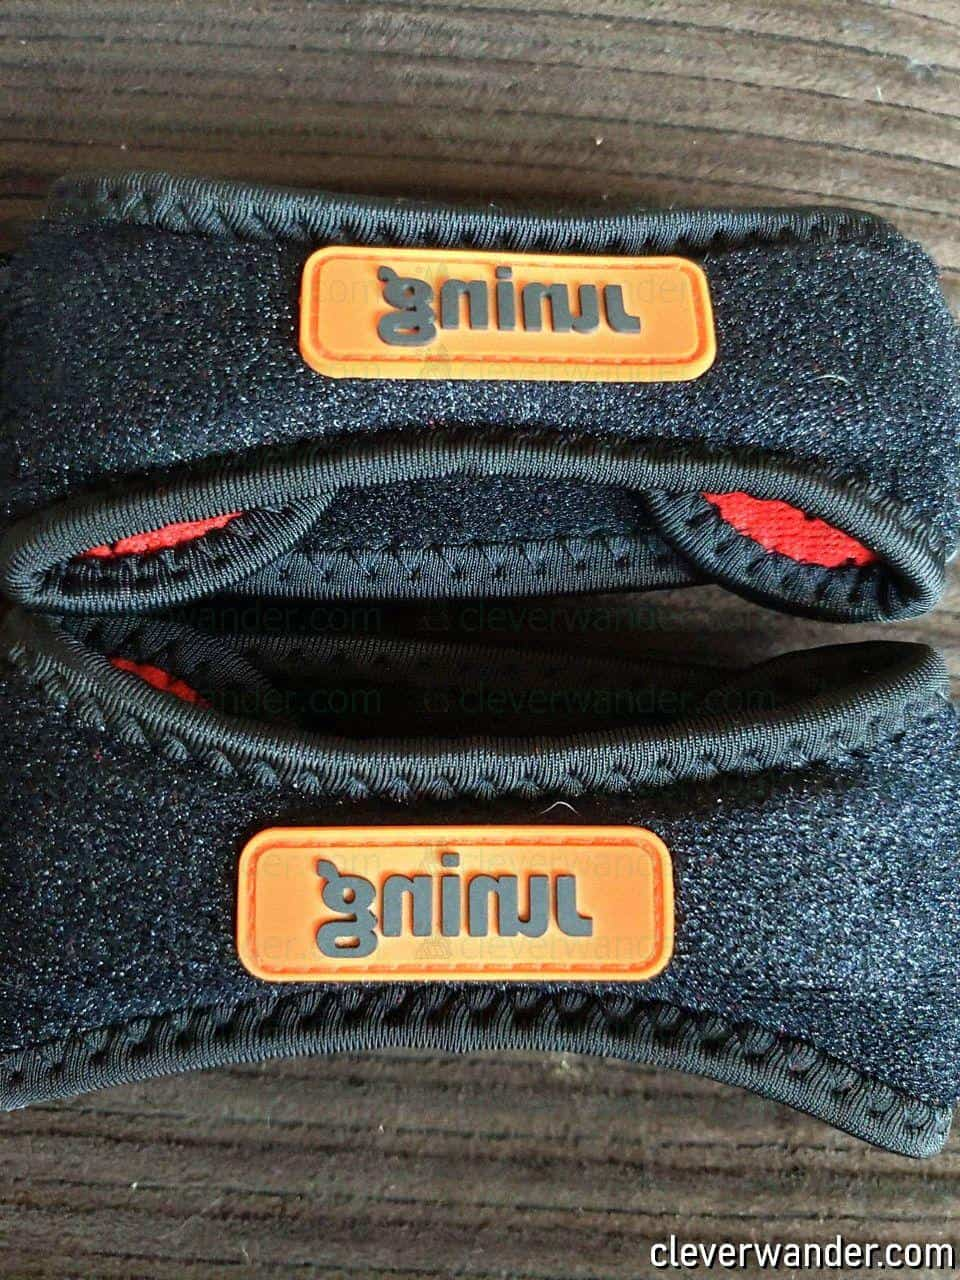 Junning Knee Strap - image review 1